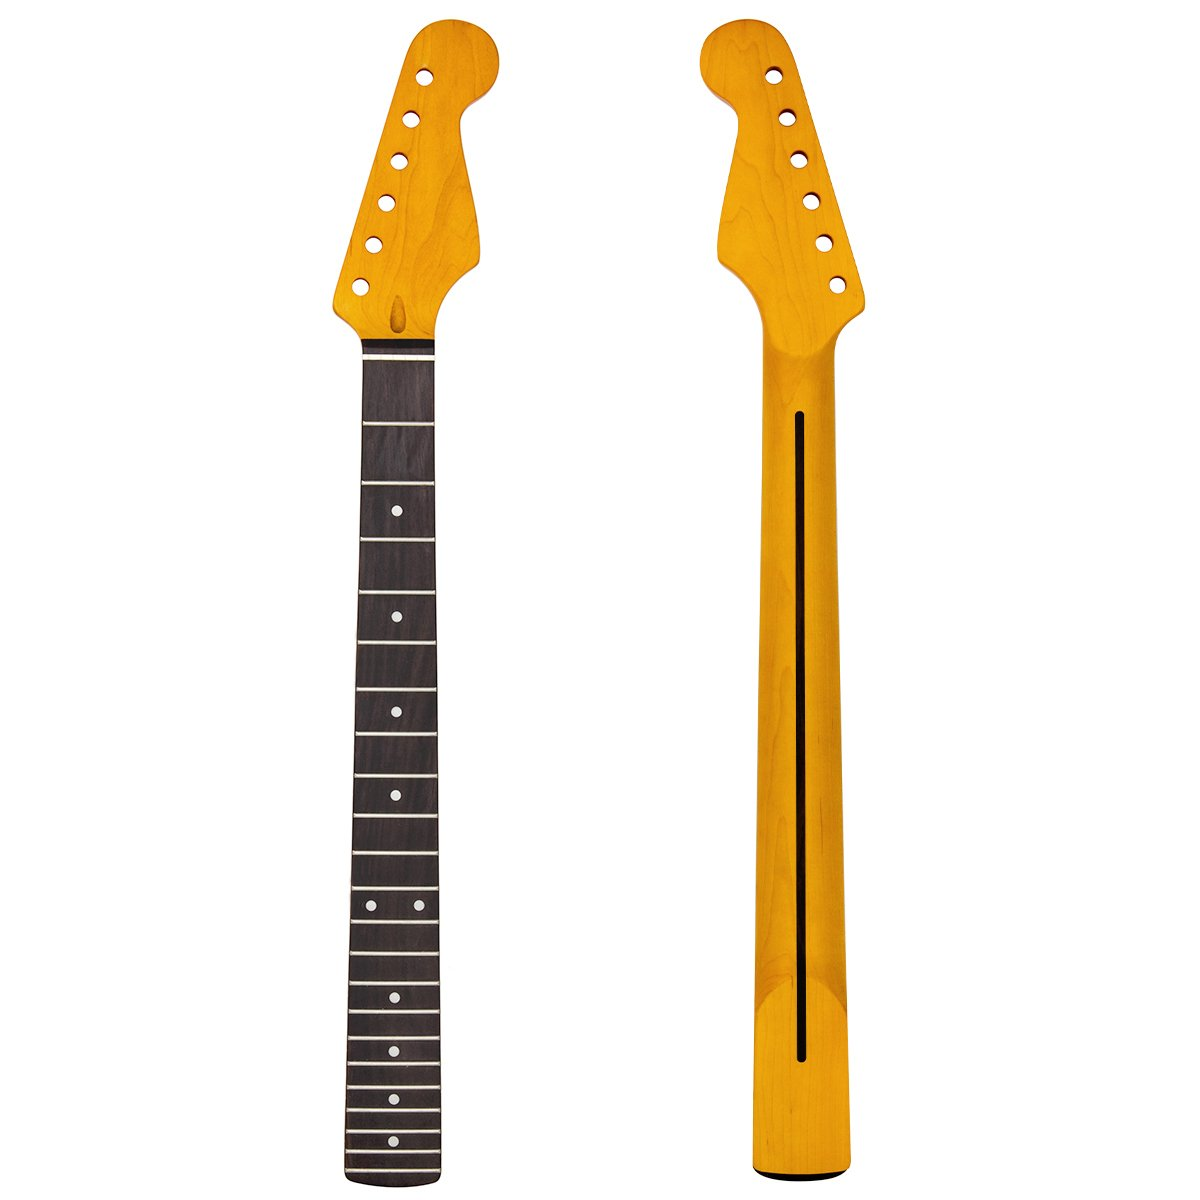 Kmise Electric Guitar Neck Yellow 22 Frets Maple Rosewood Fingerboard Parts Replacement